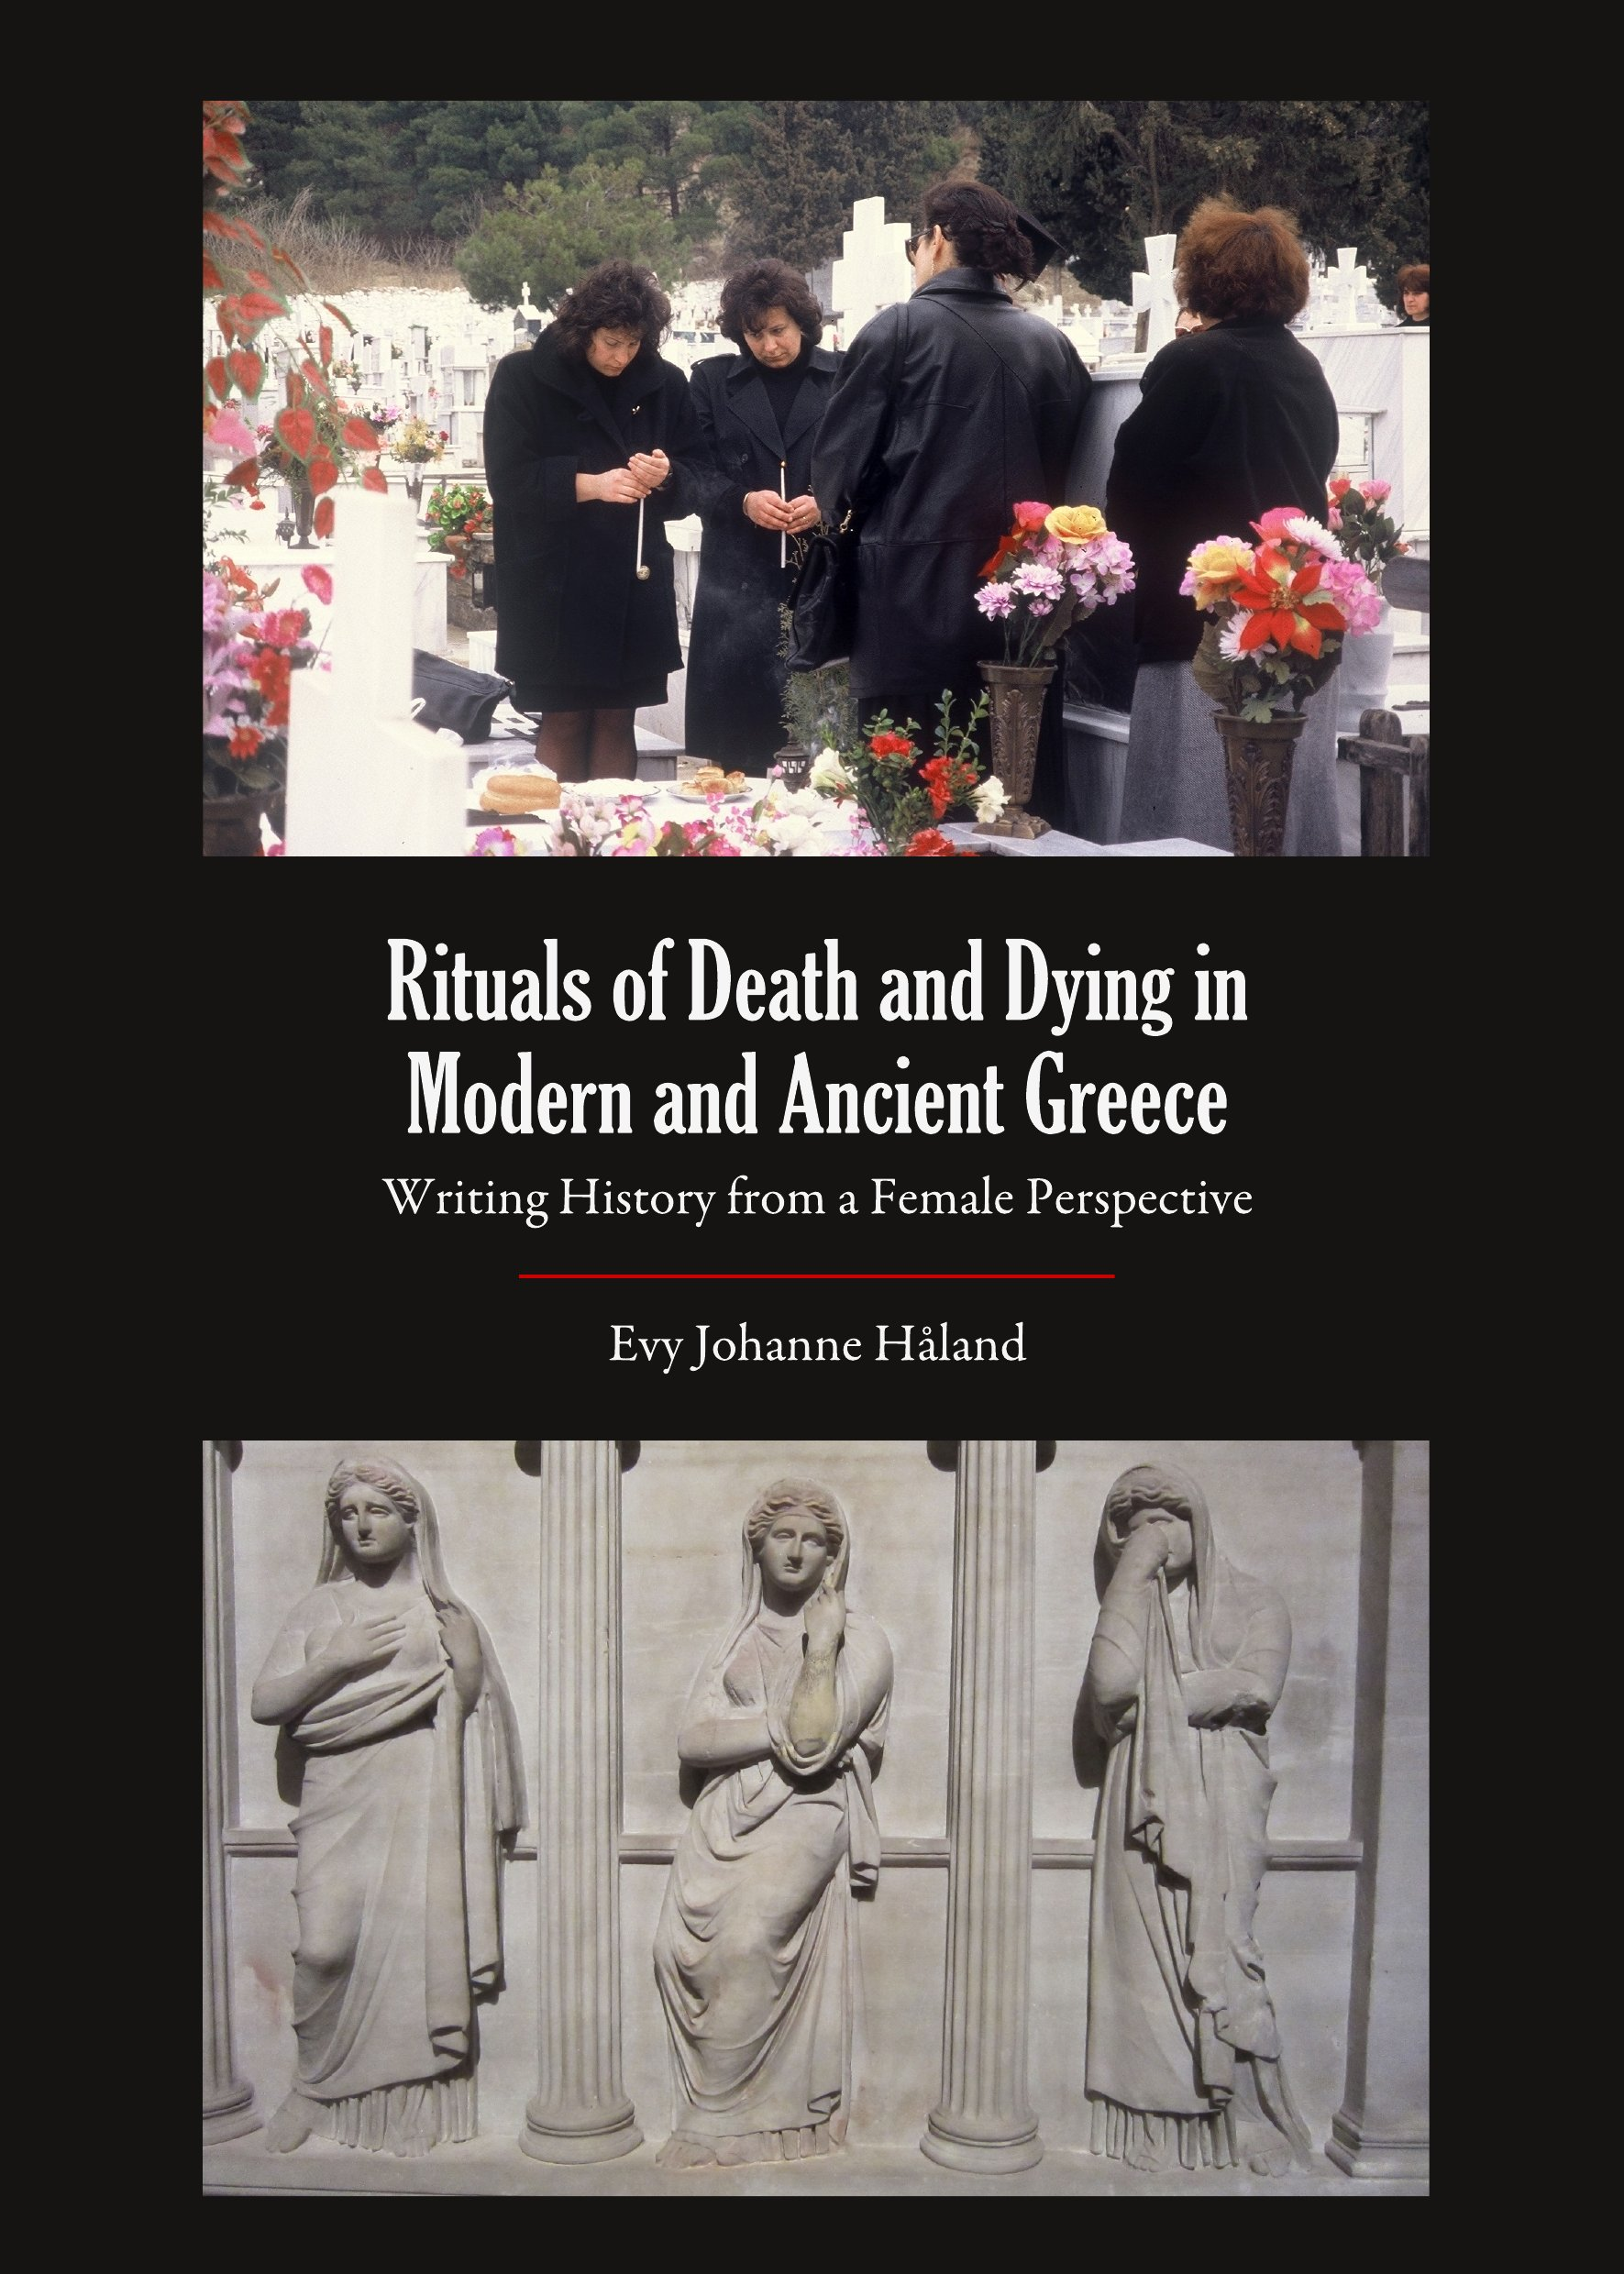 Rituals of Death and Dying in Modern and Ancient Greece: Writing History from a Female Perspective